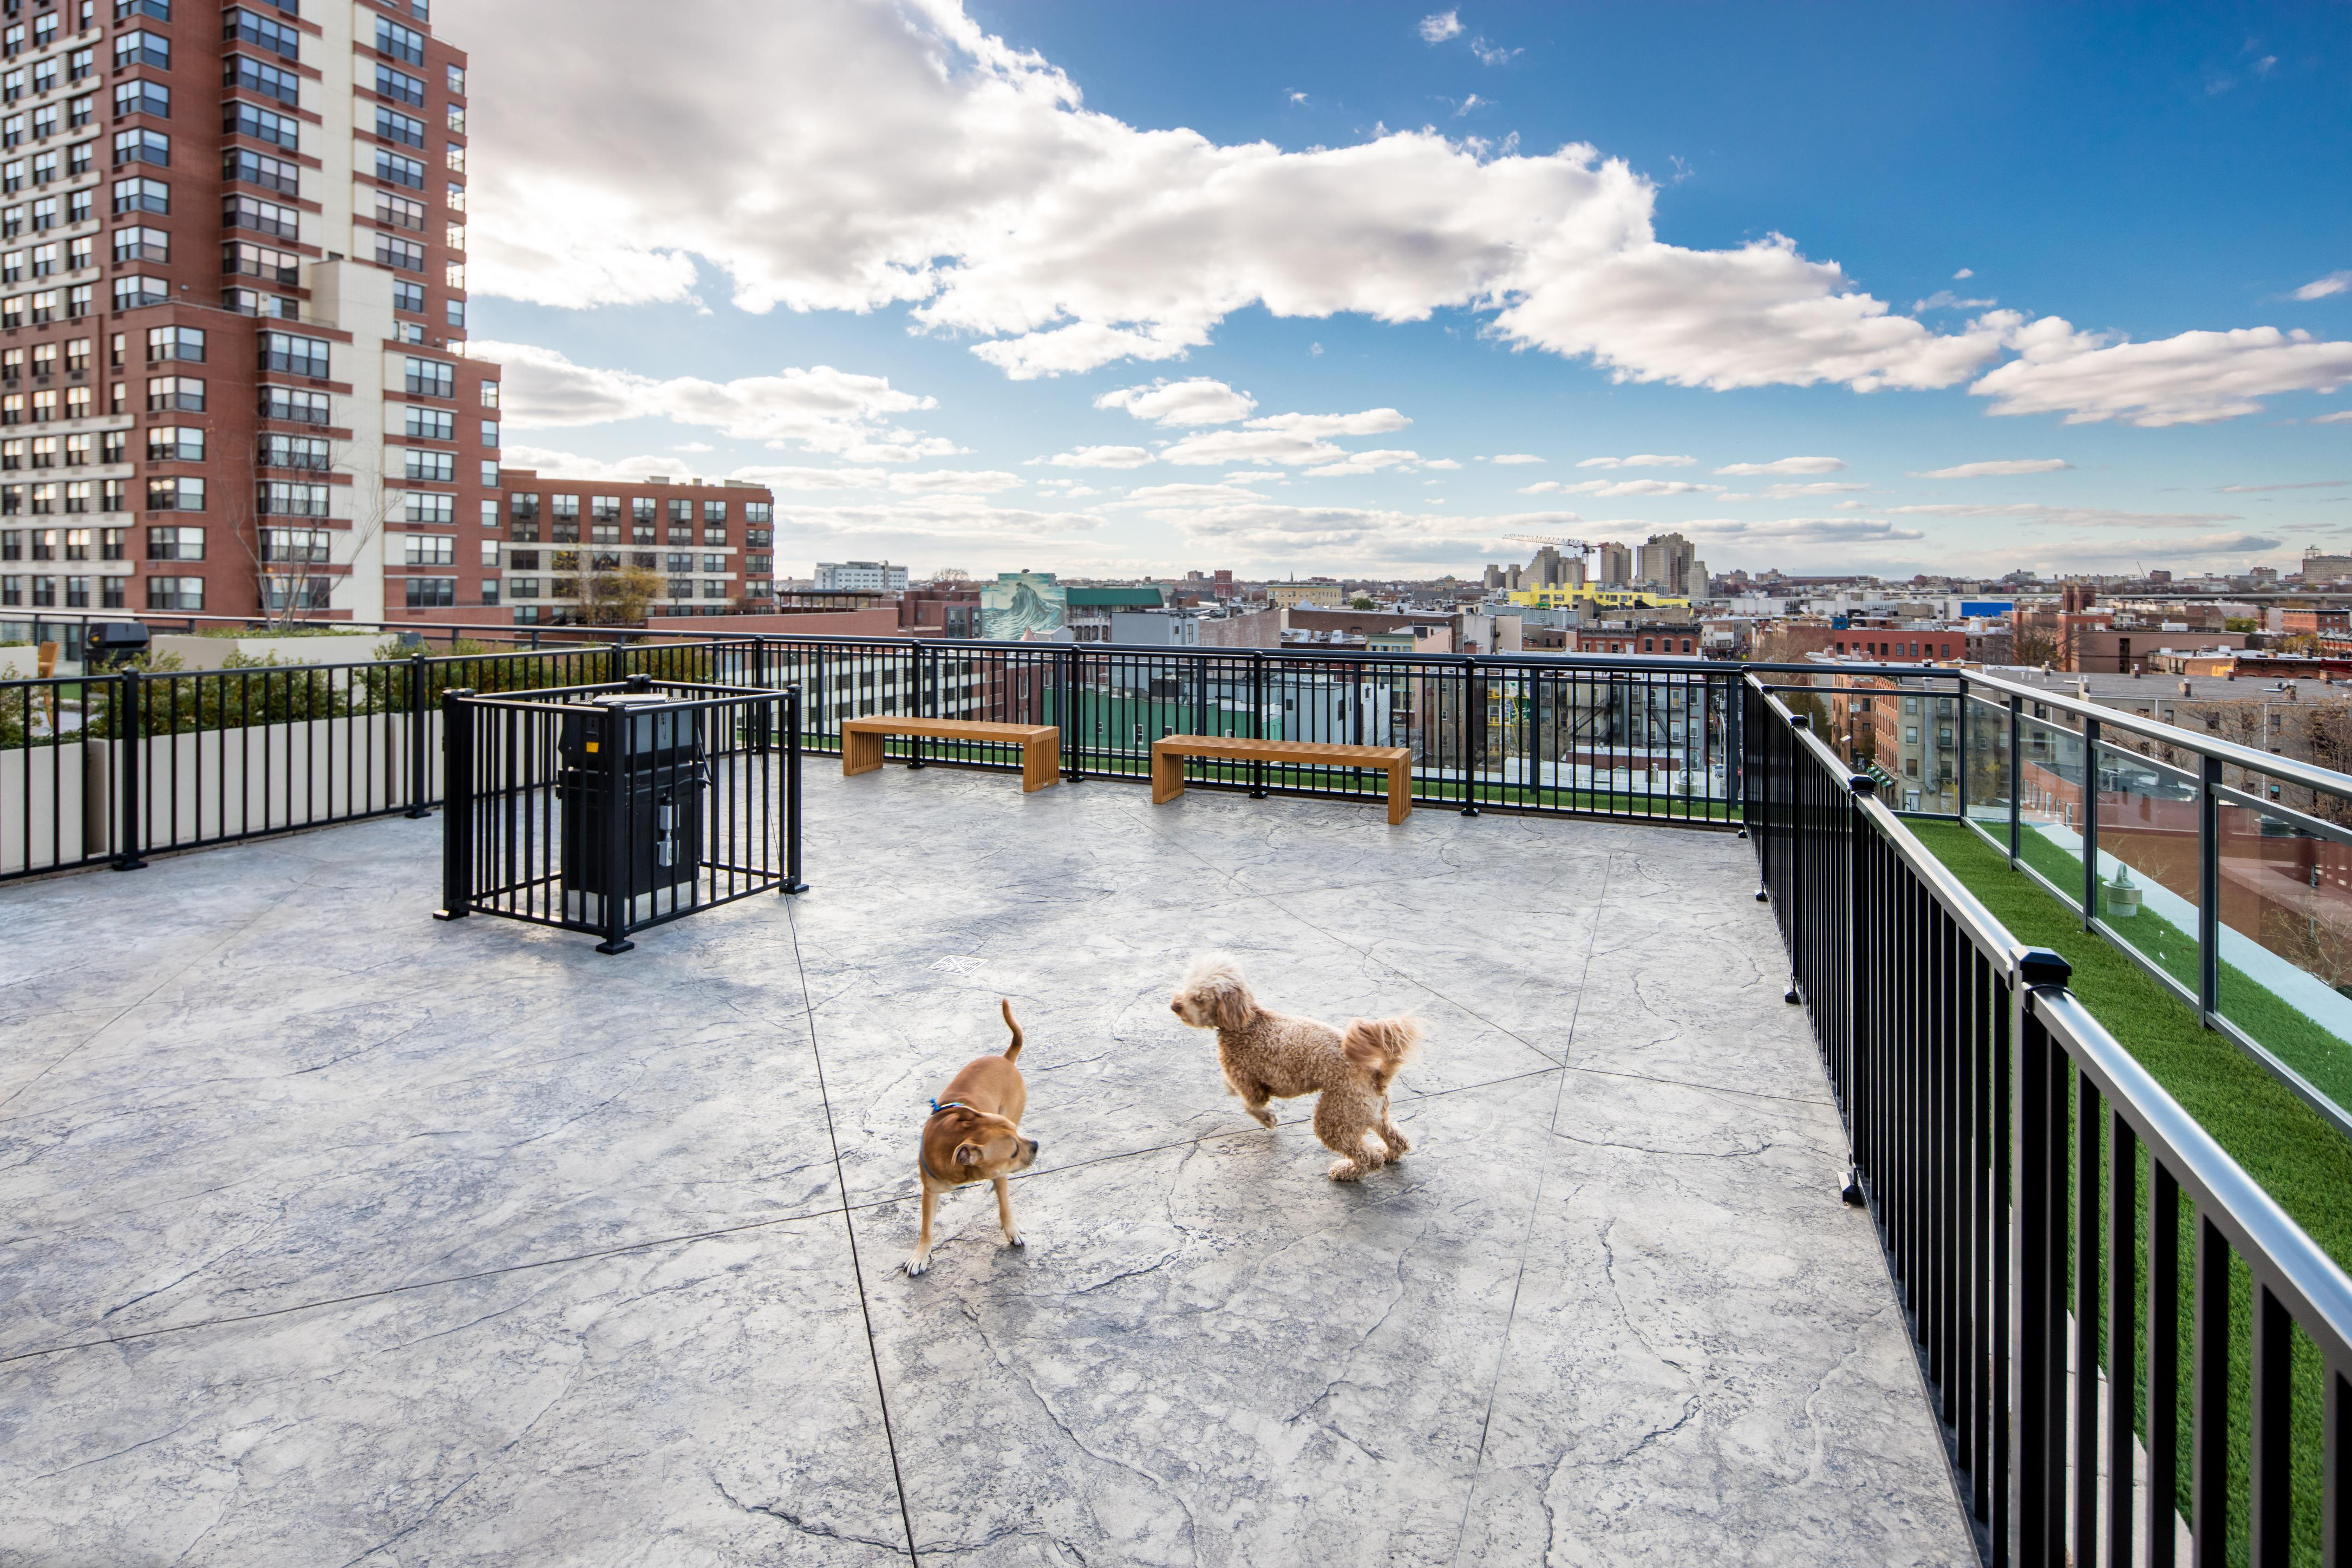 Two dogs playing on a rooftop terrace of an apartment building.